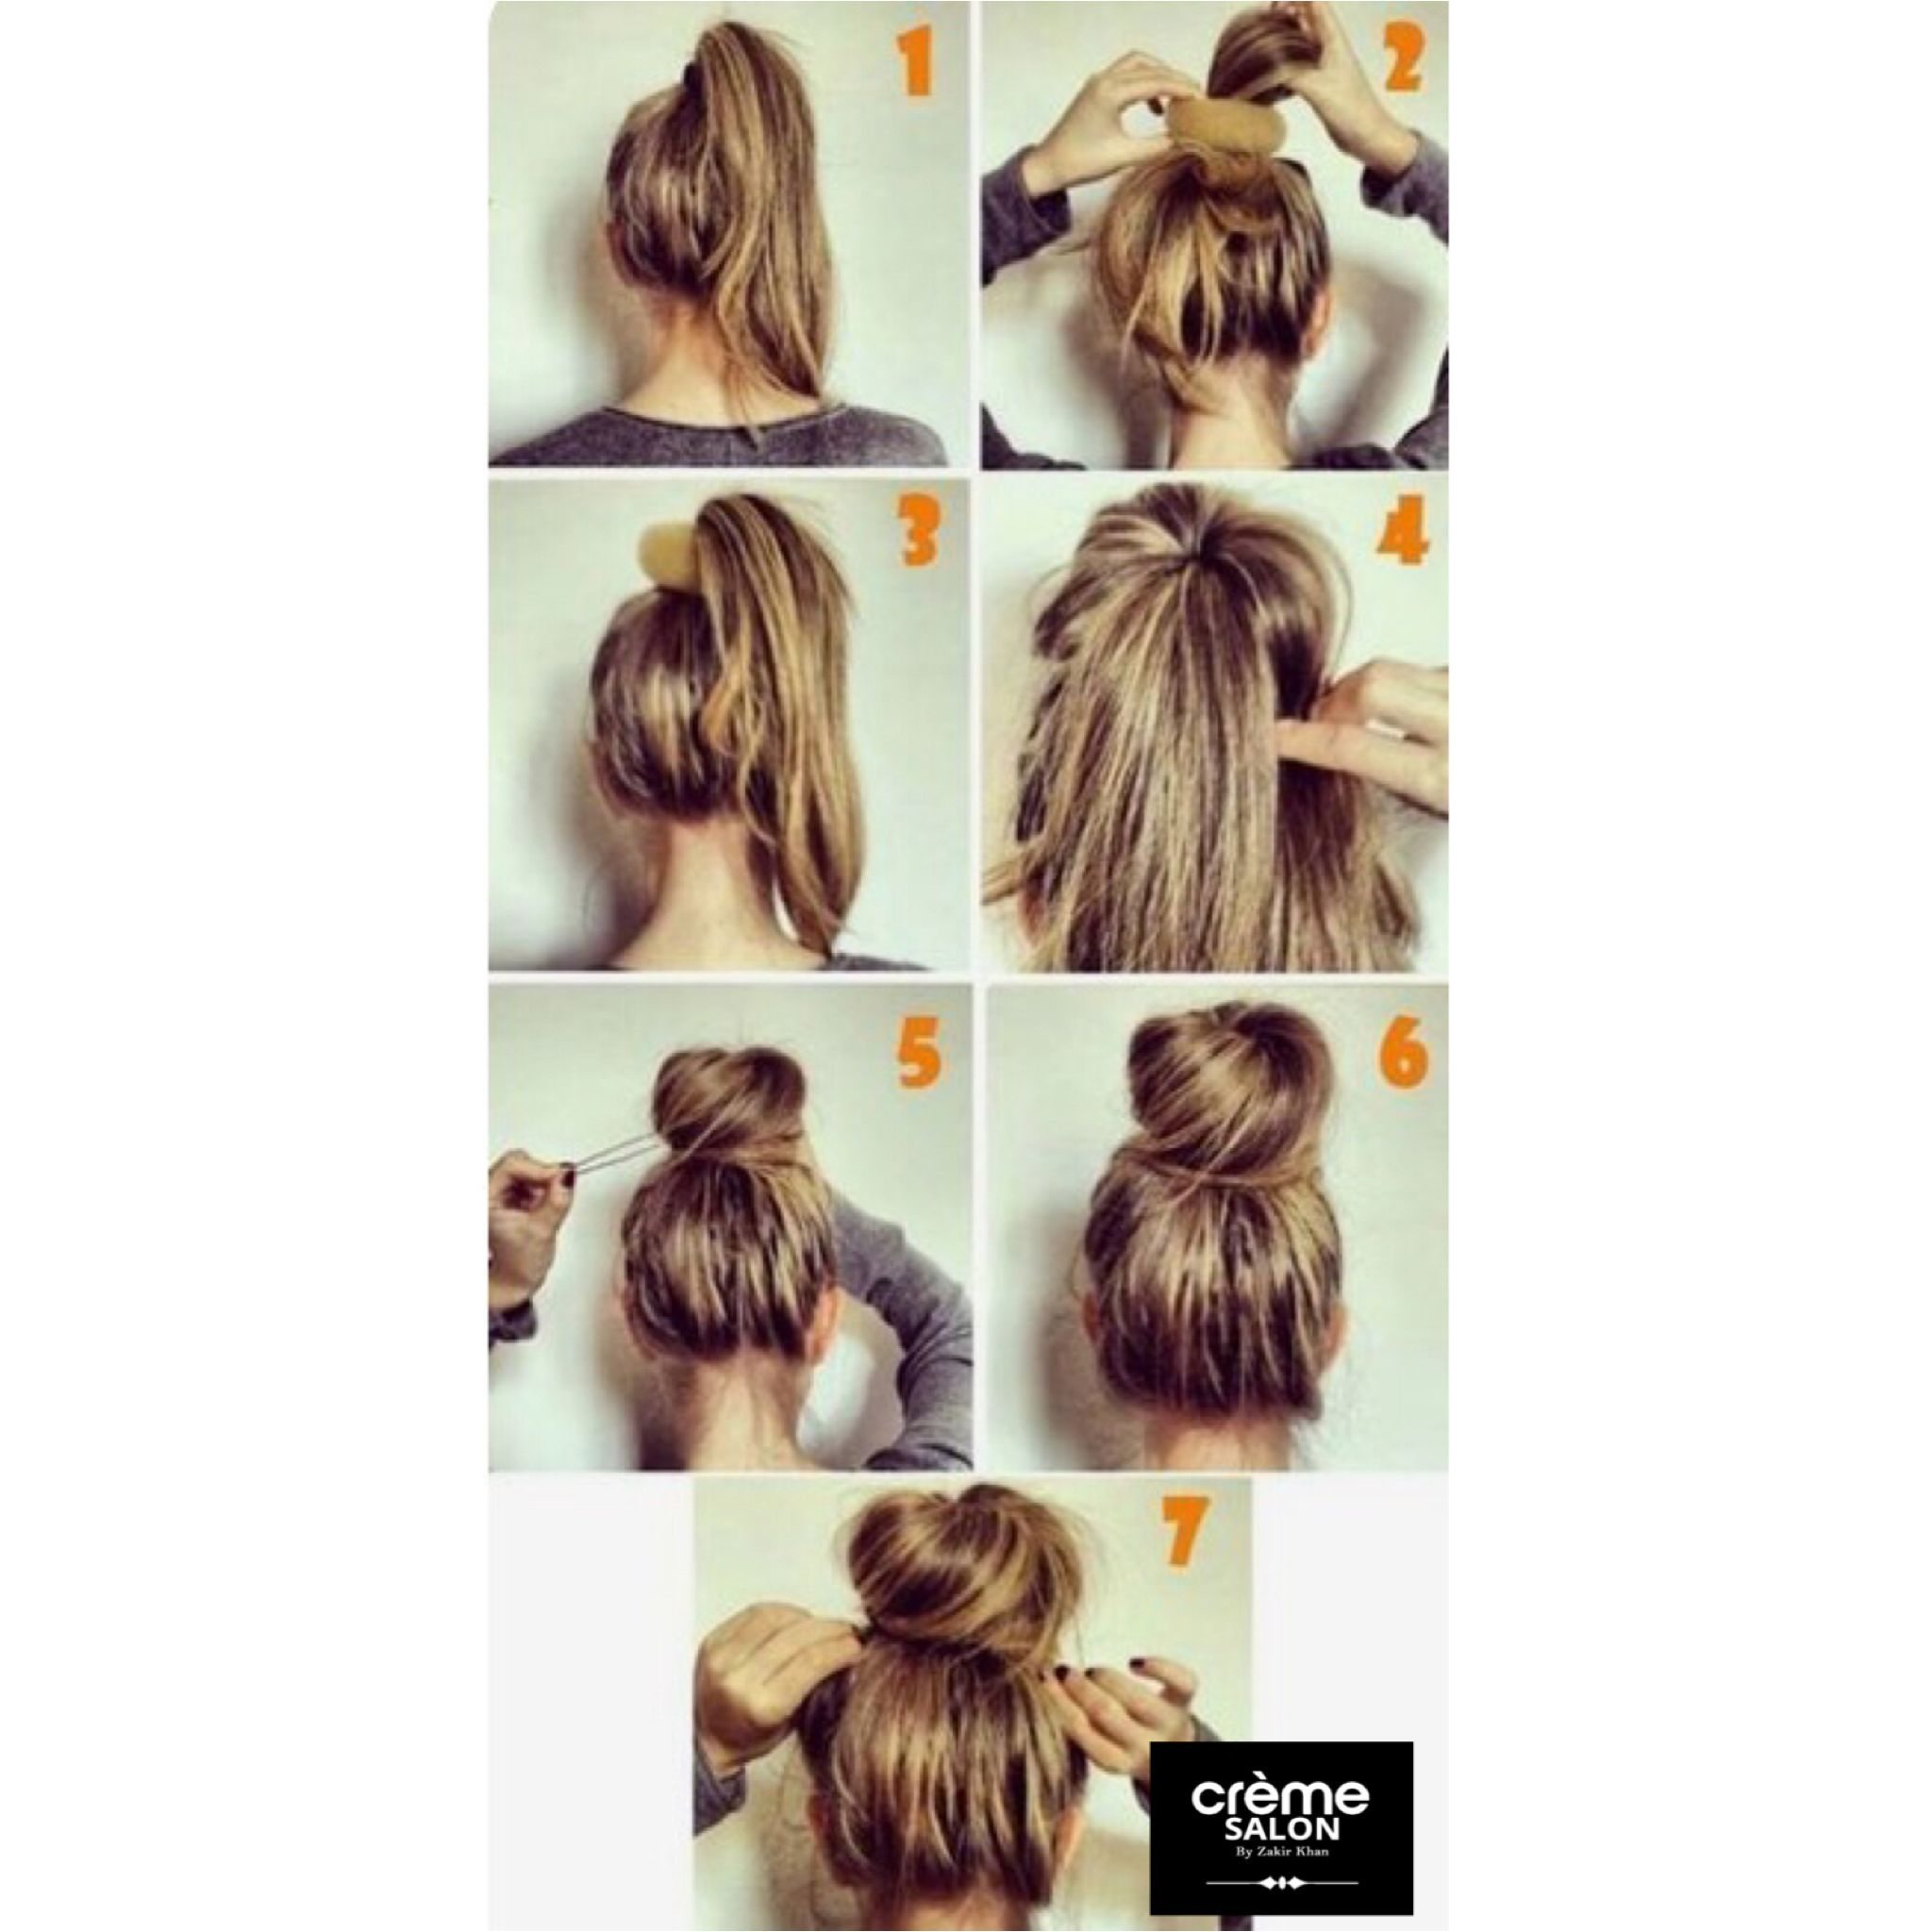 Having A Bad Hair Day Here S A Step By Step Tutorial On How To Rock That Perfect Messy Bun To College Work And Make H Hair Hacks Hair Bun Tutorial Hair Styles